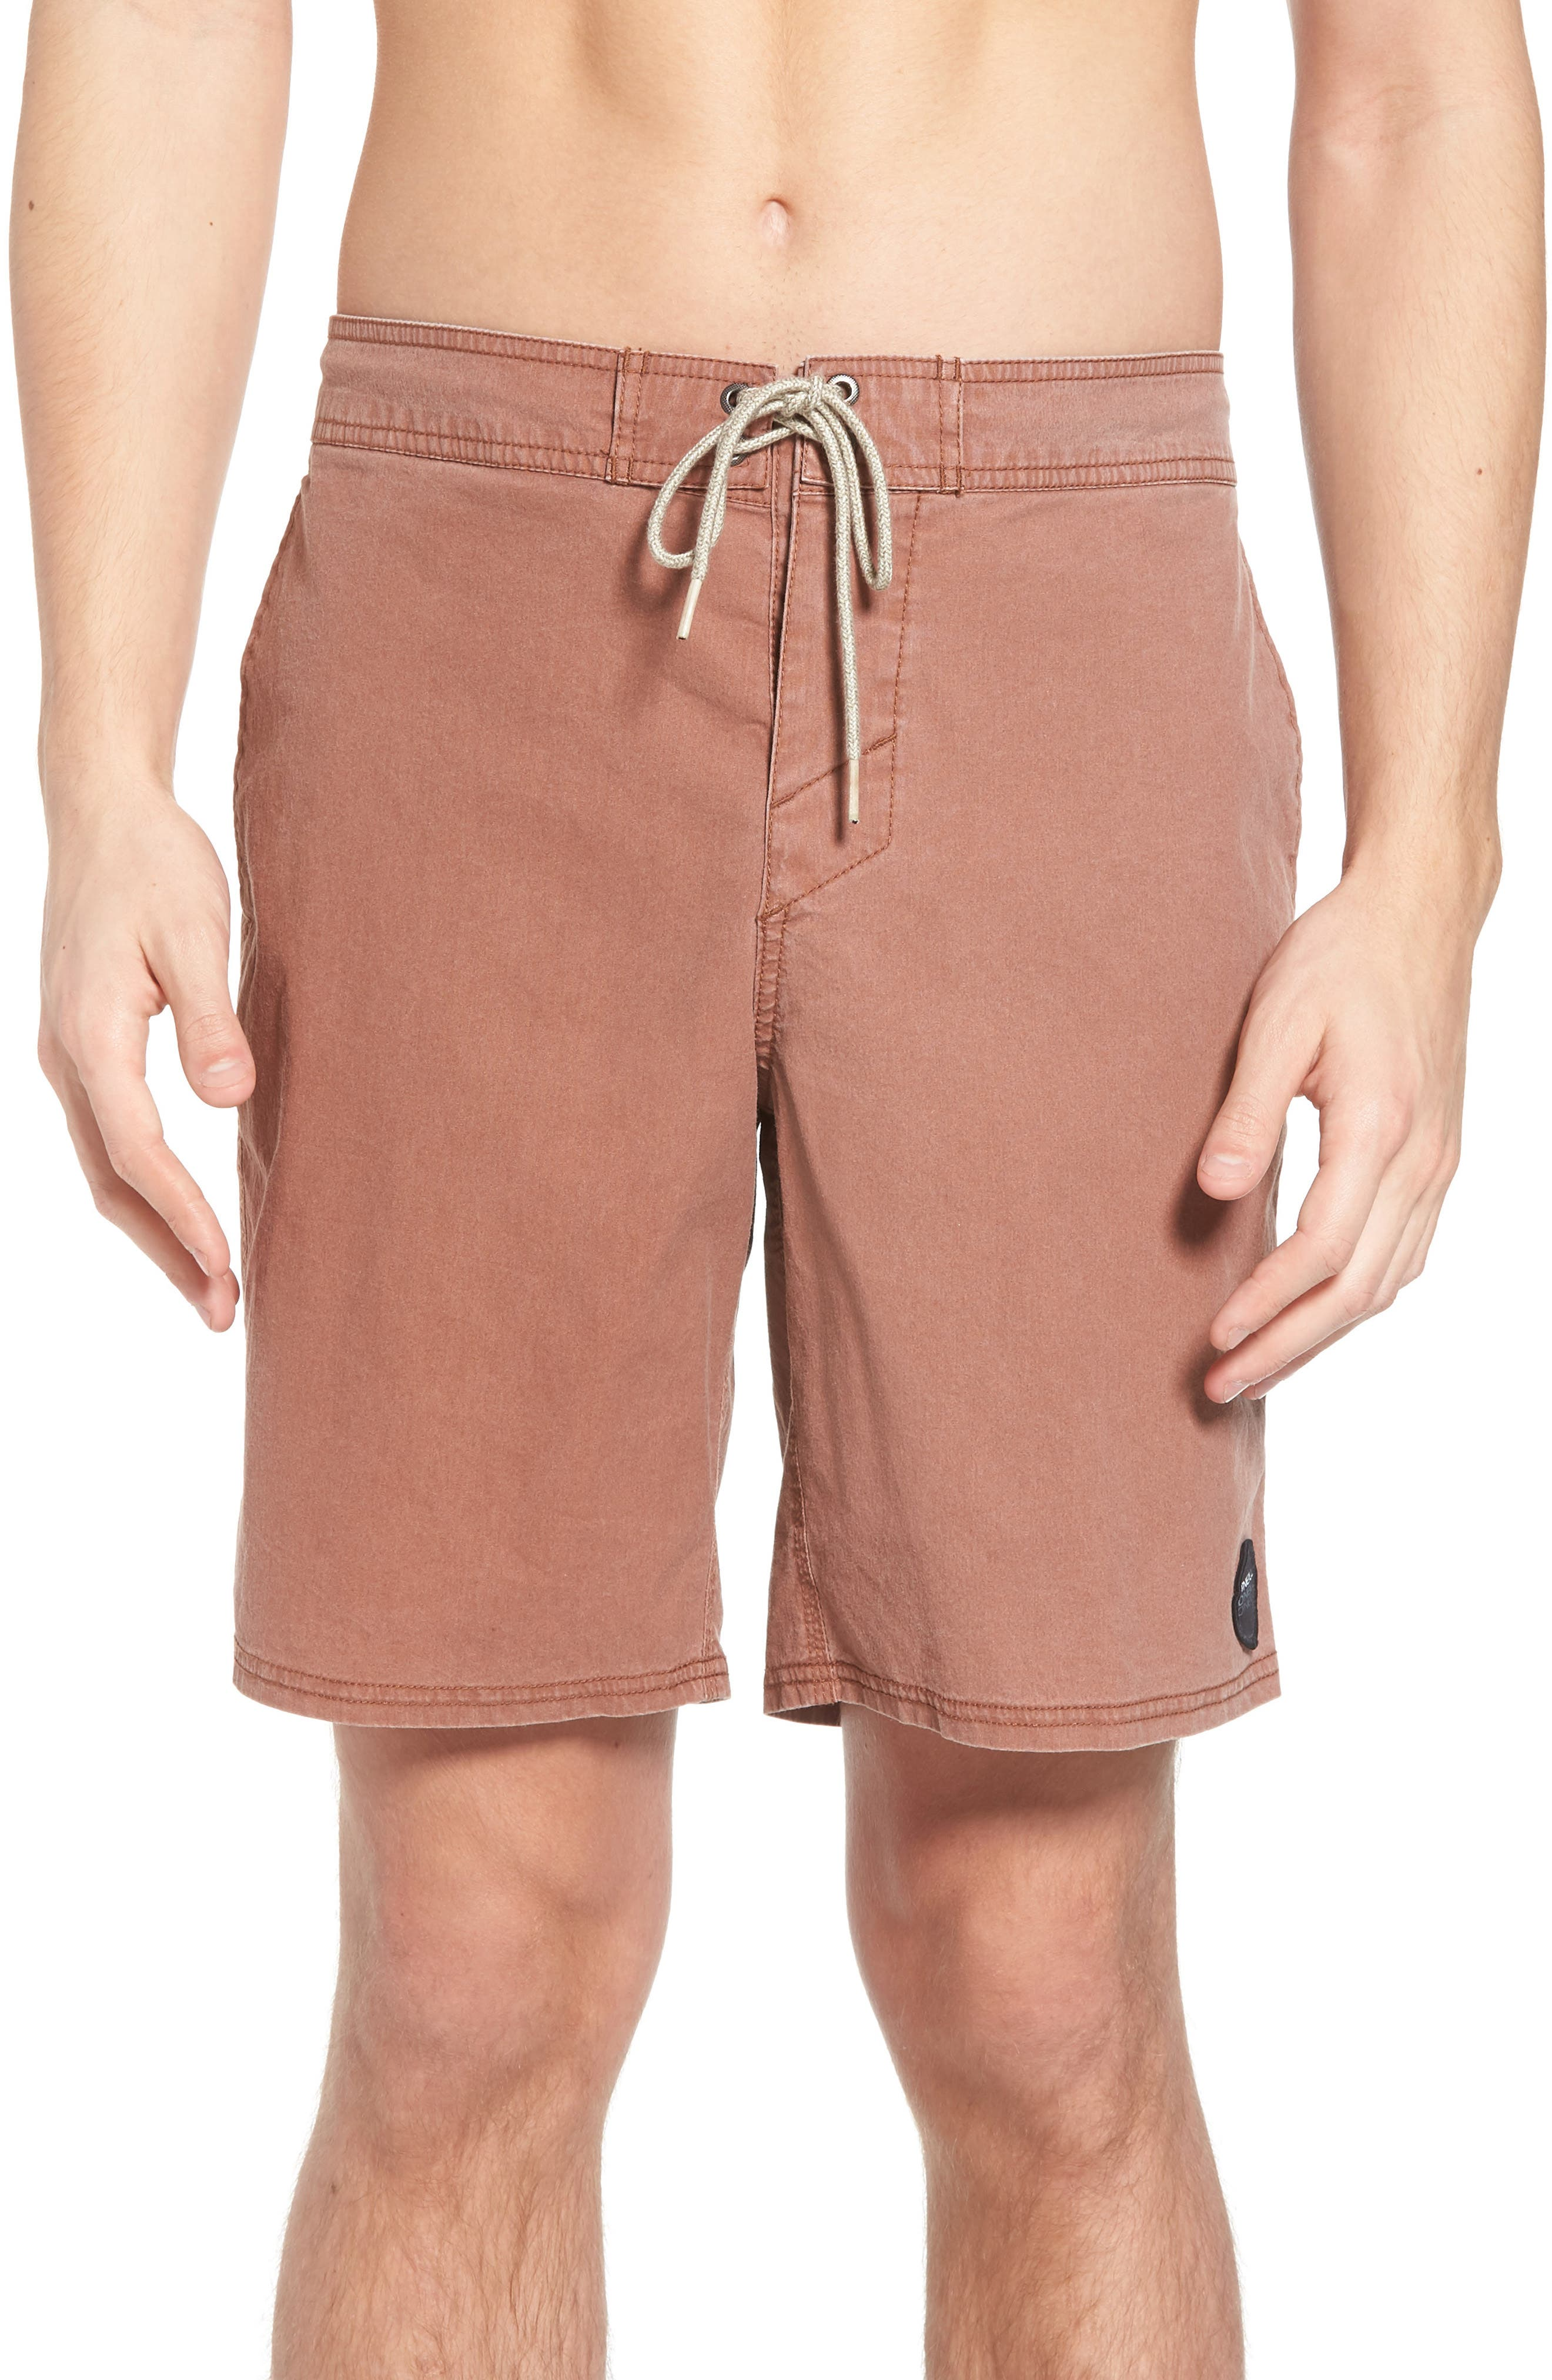 Faded Cruzer Board Shorts,                         Main,                         color, Russet